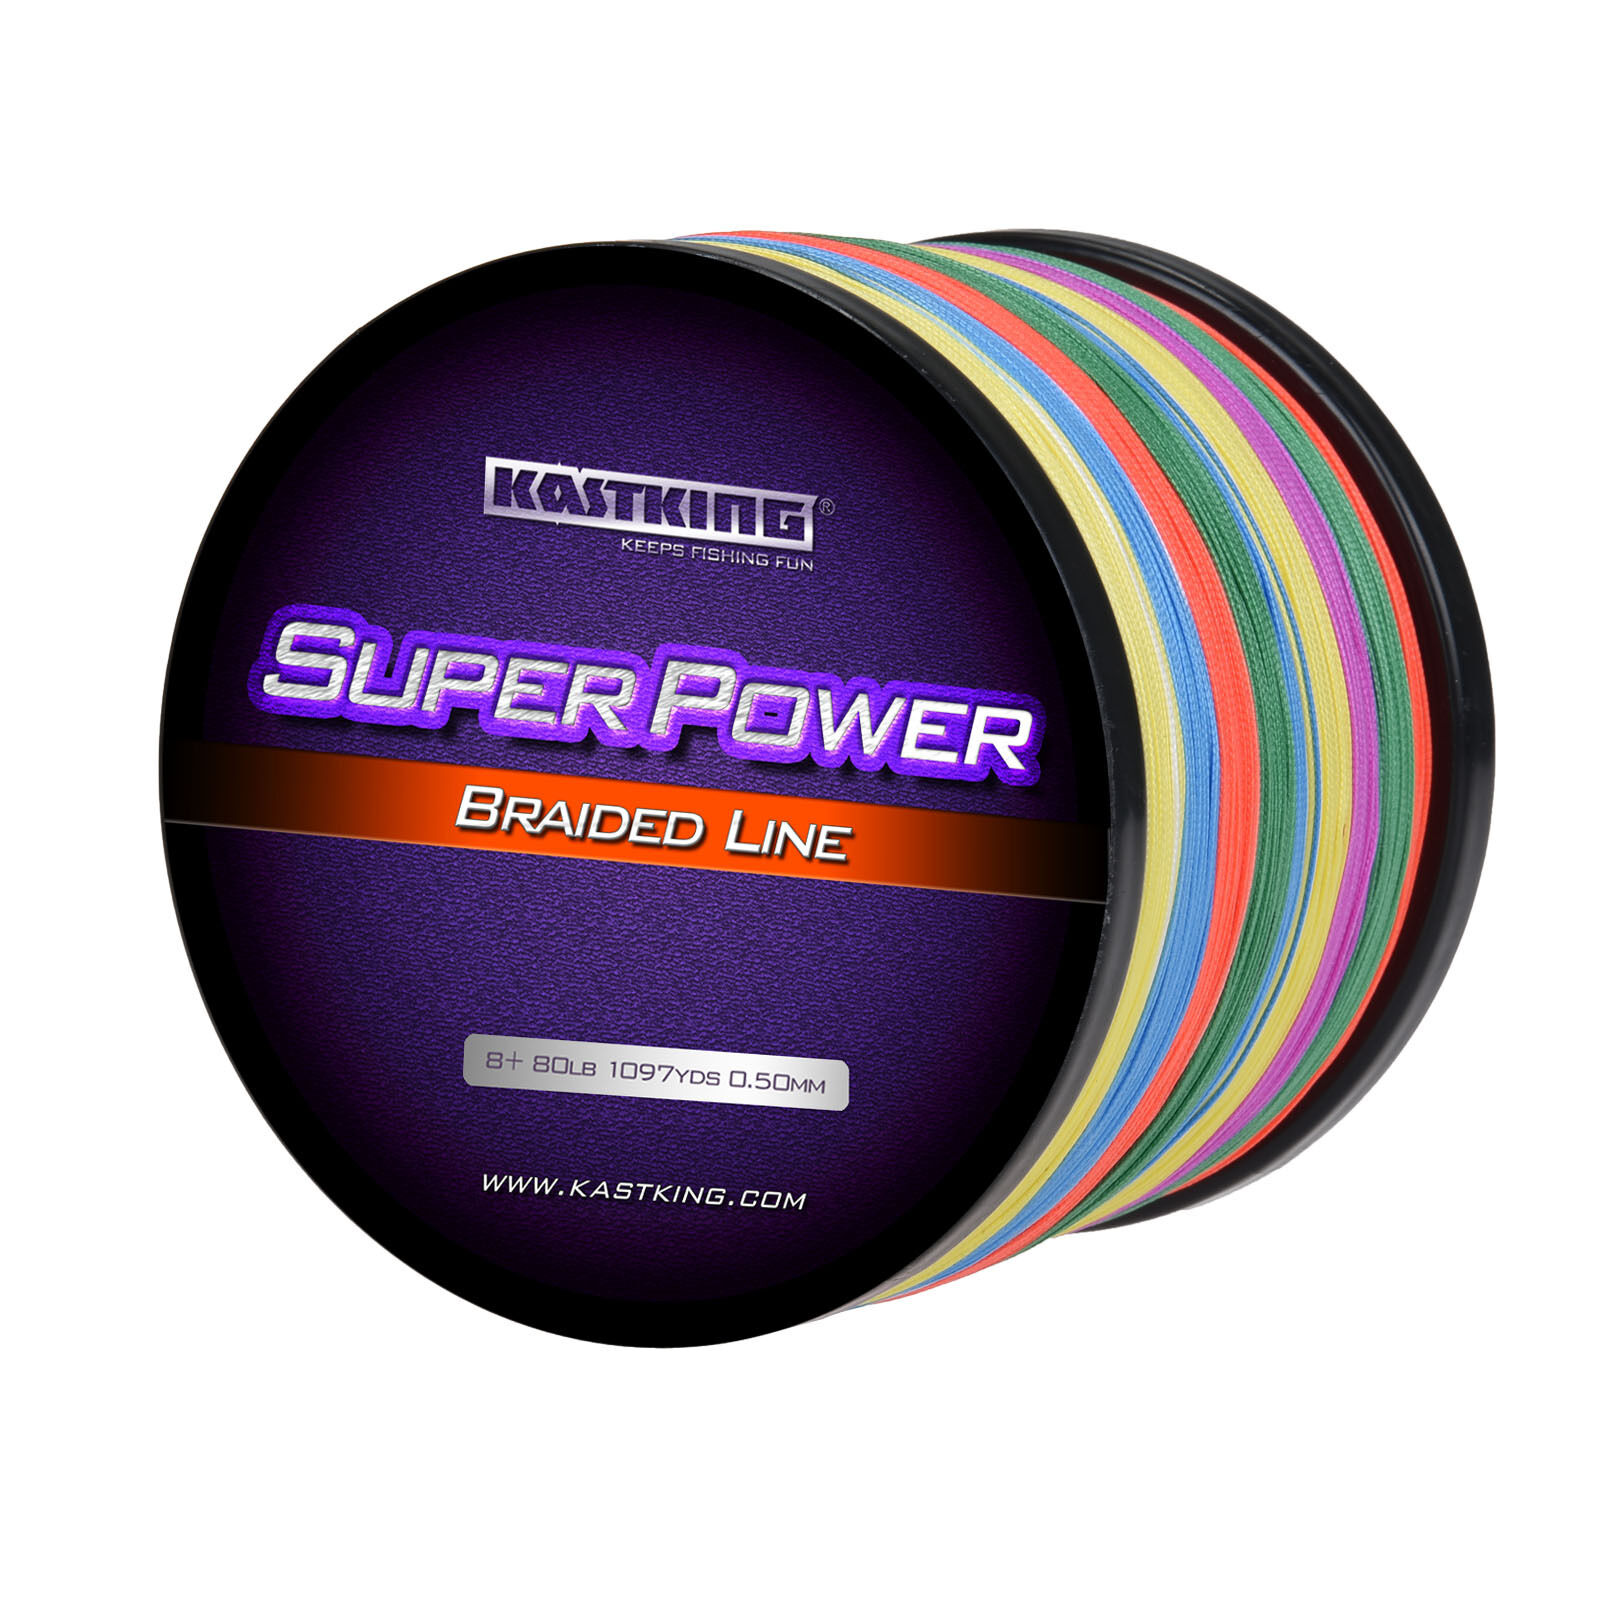 KastKing SuperPower Braided Fishing Line SELECT LB TEST 330 yds- 1094yds